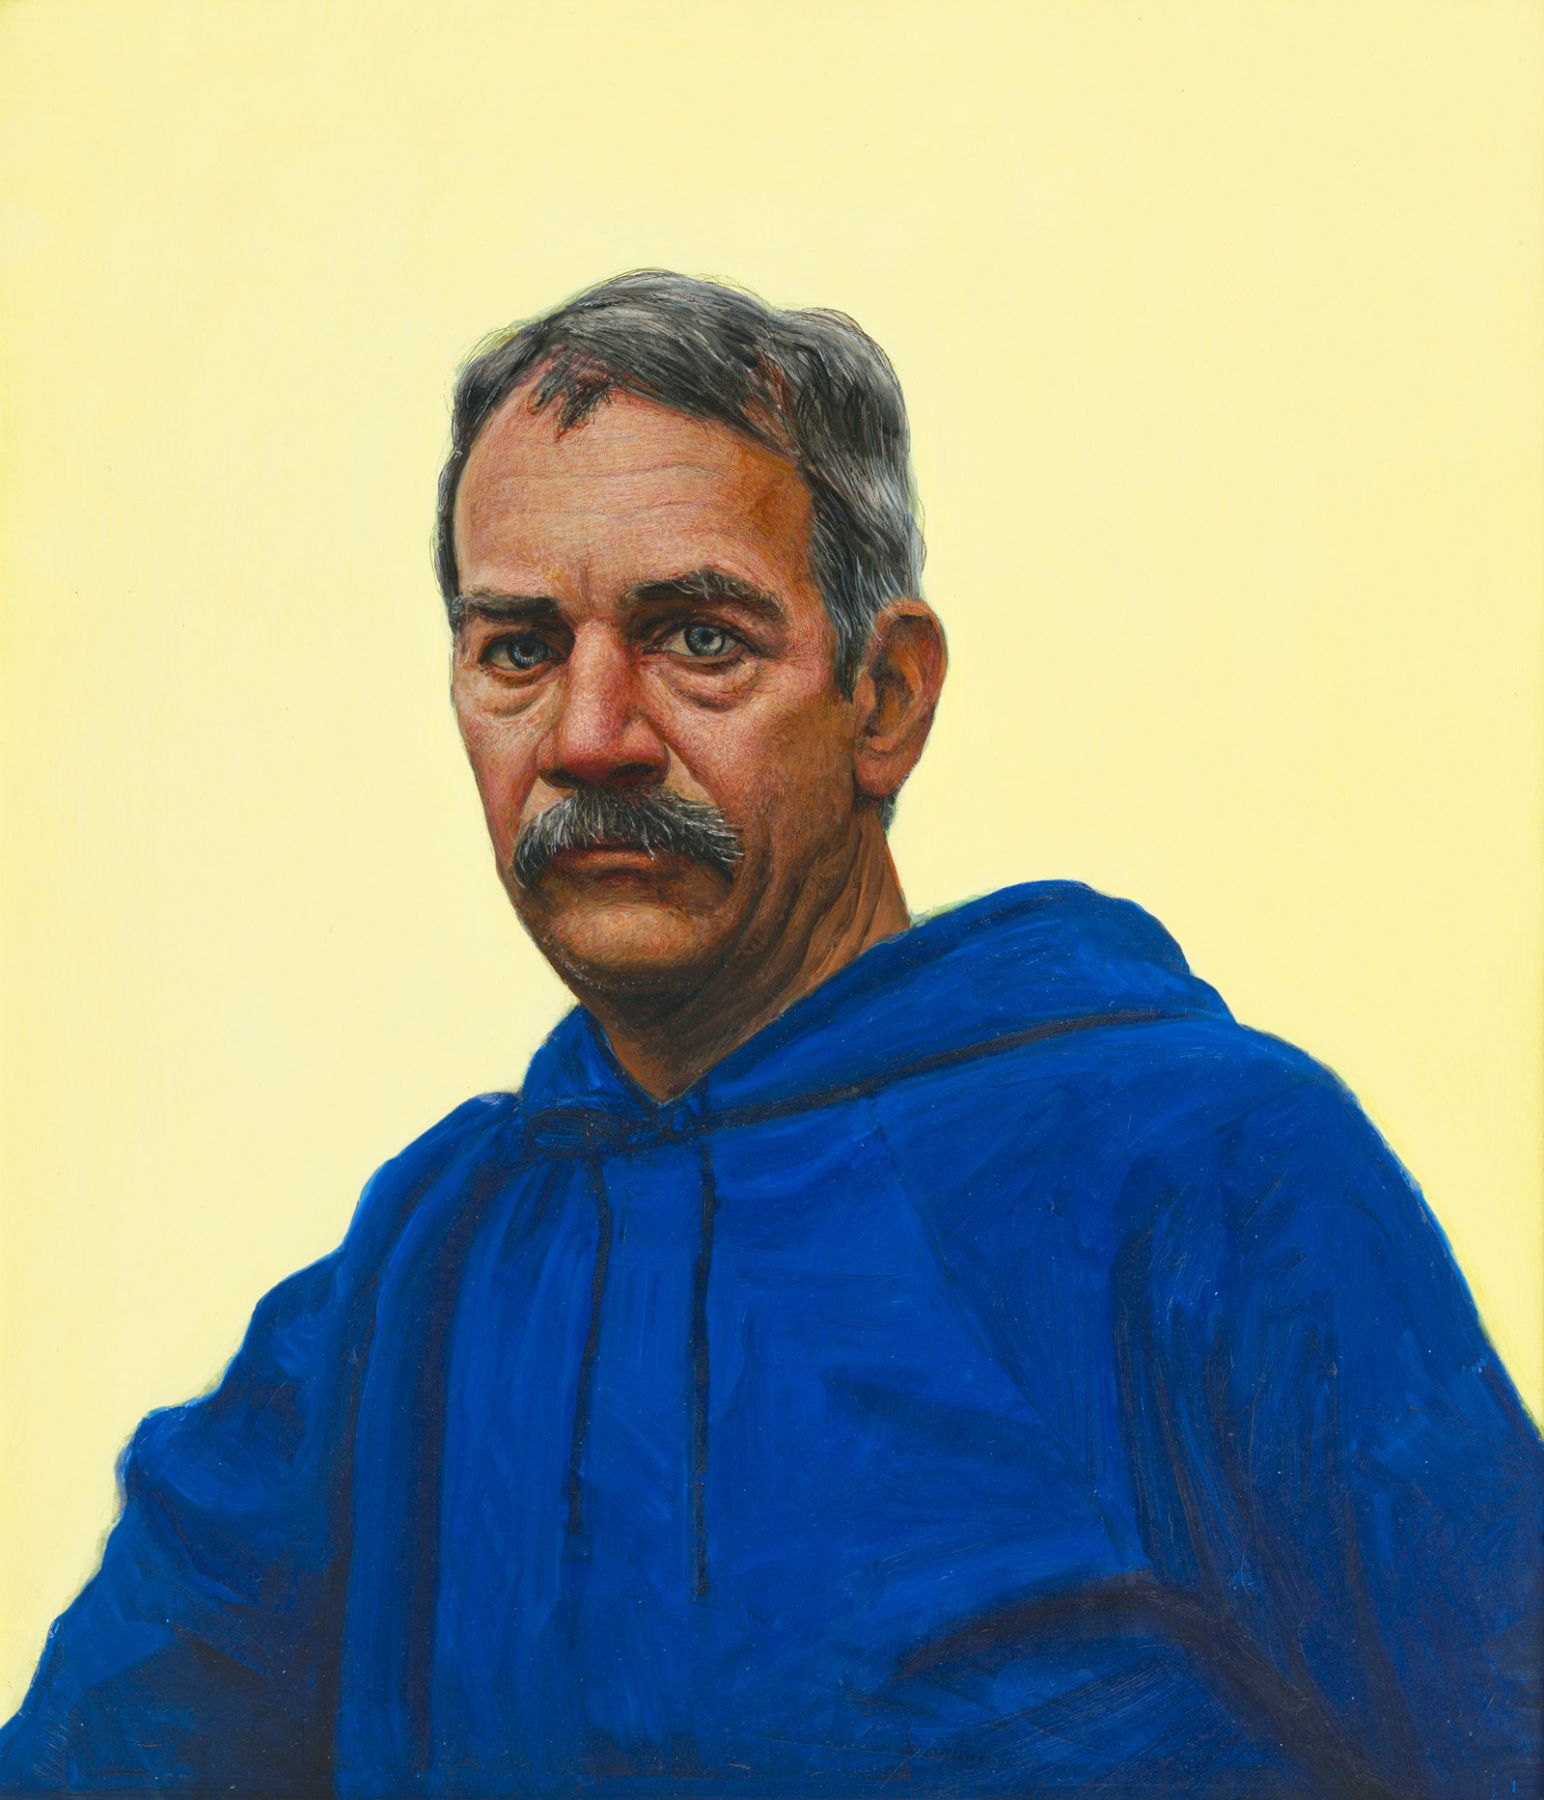 Gregory Gillespie, Self Portrait in Blue Hooded Sweatshirt (SOLD), 1993, oil and alkyd on board, 26 x 22 1/2 inches